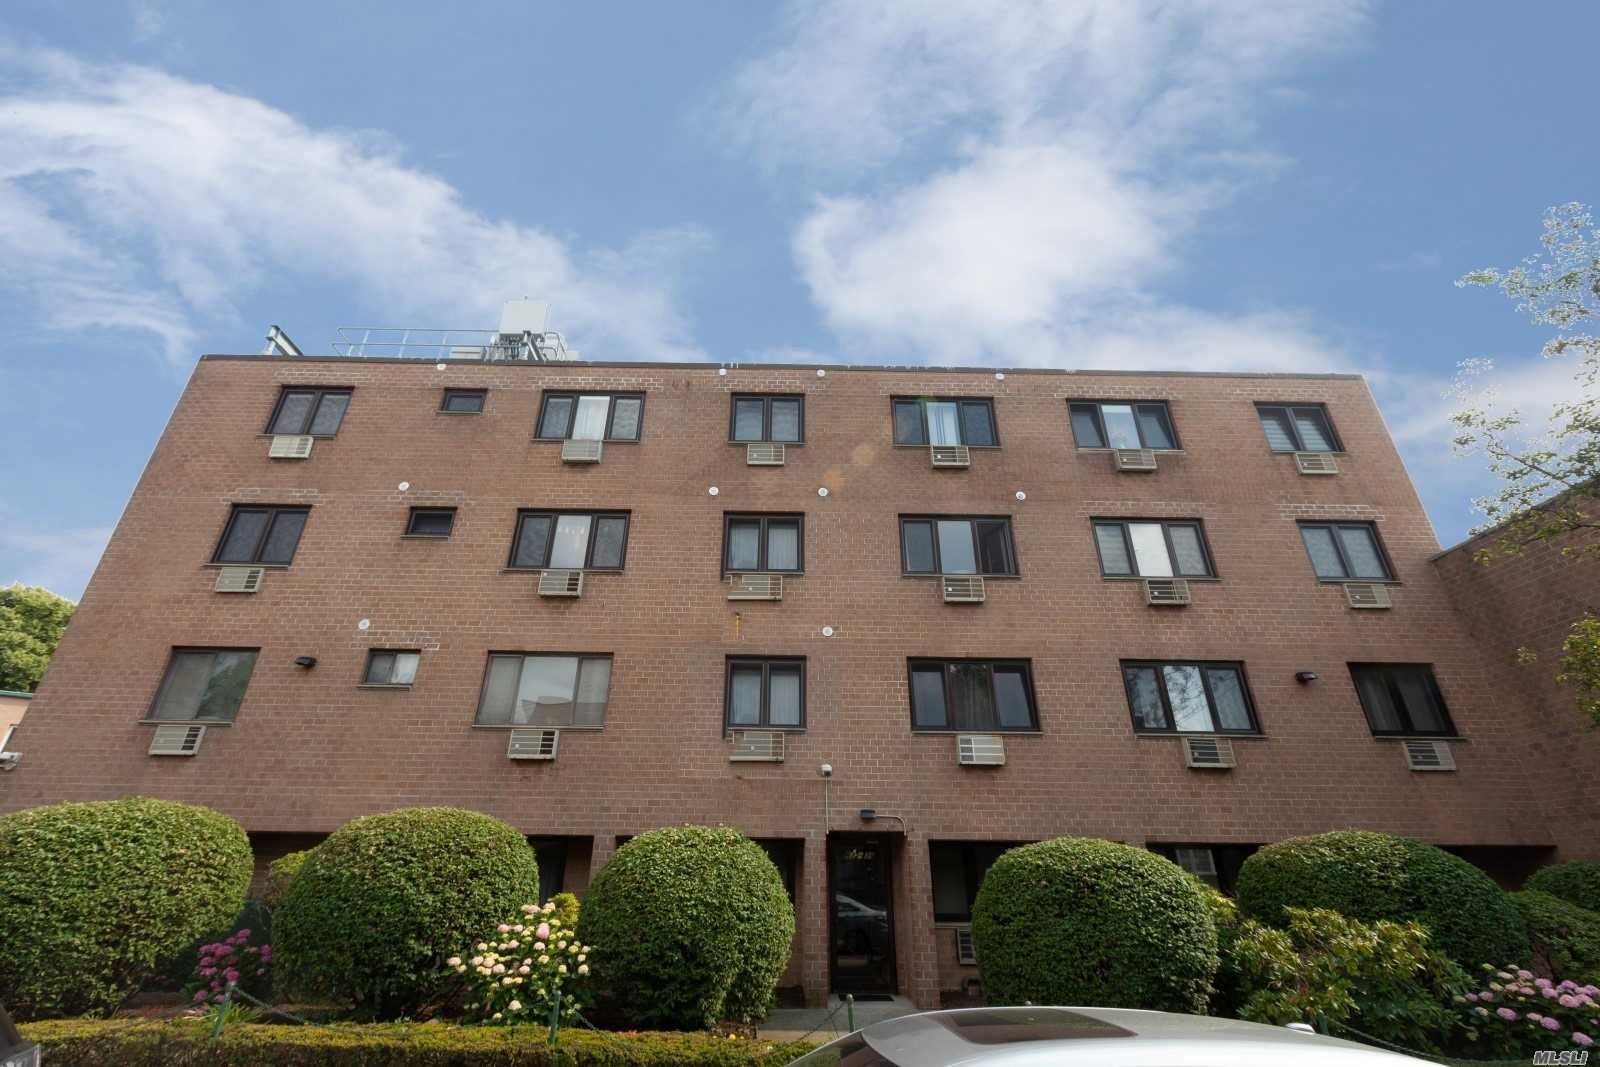 62-36 59th Drive #103, Maspeth, NY 11378 - MLS#: 3231510